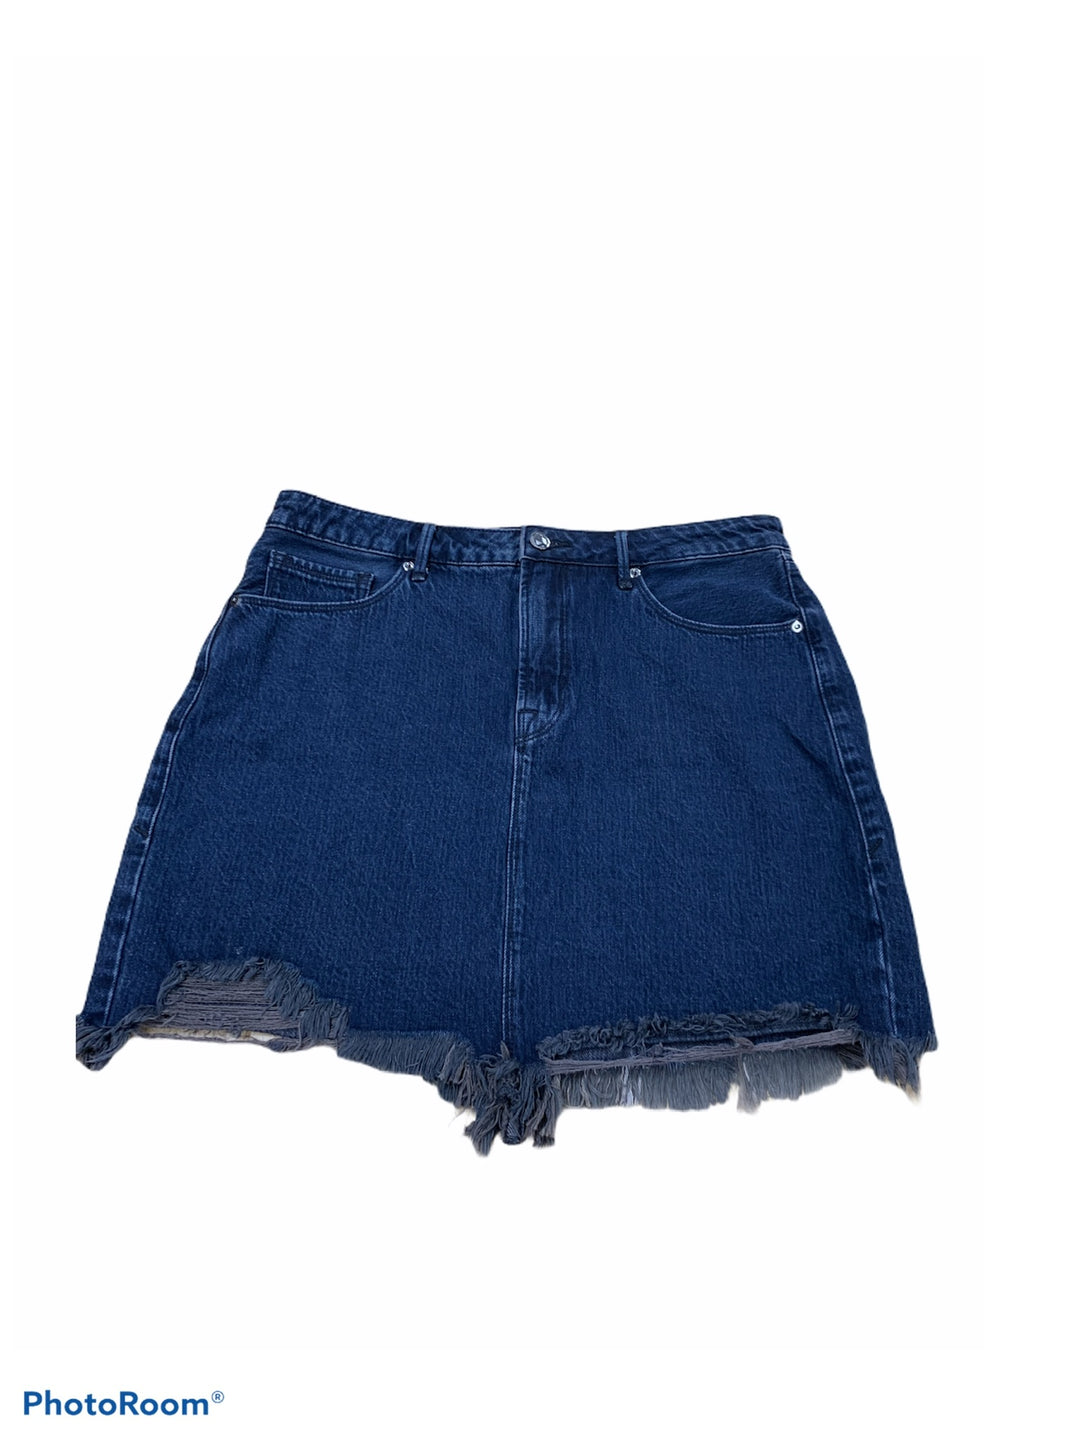 Primary Photo - BRAND: GOOD AMERICAN <BR>STYLE: SKIRT <BR>COLOR: DENIM <BR>SIZE: 12 <BR>SKU: 196-14511-47763